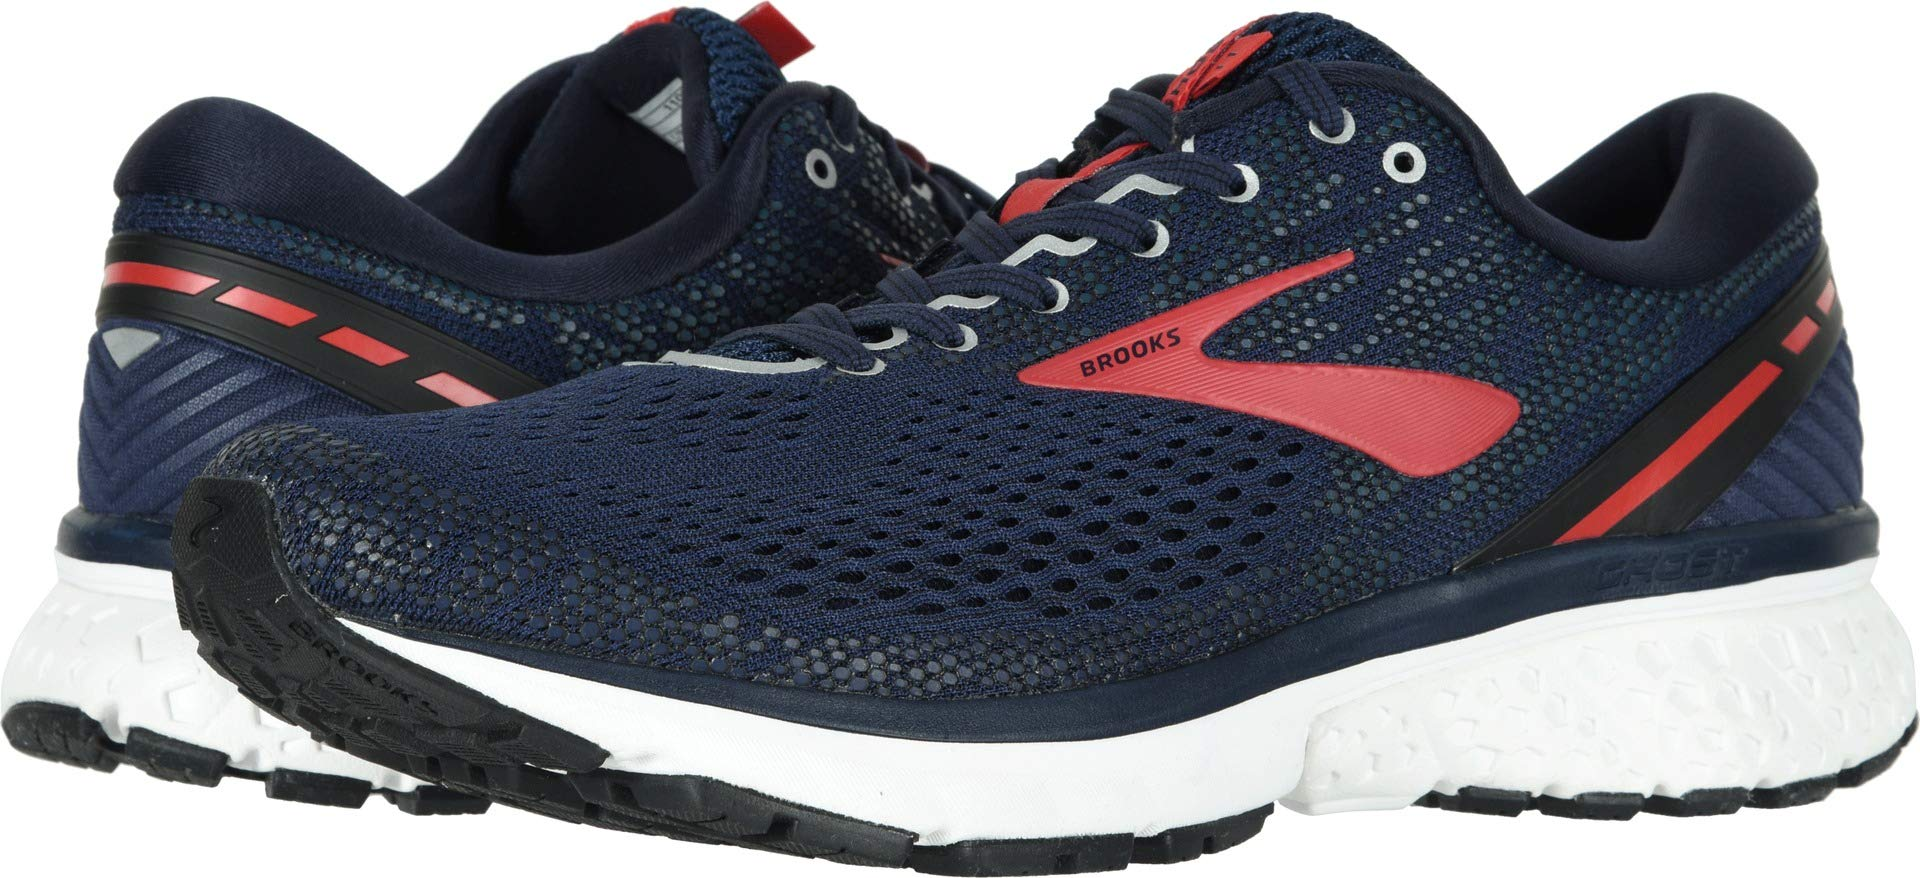 Brooks Men's Ghost 11 Navy/Red/White 10.5 D US